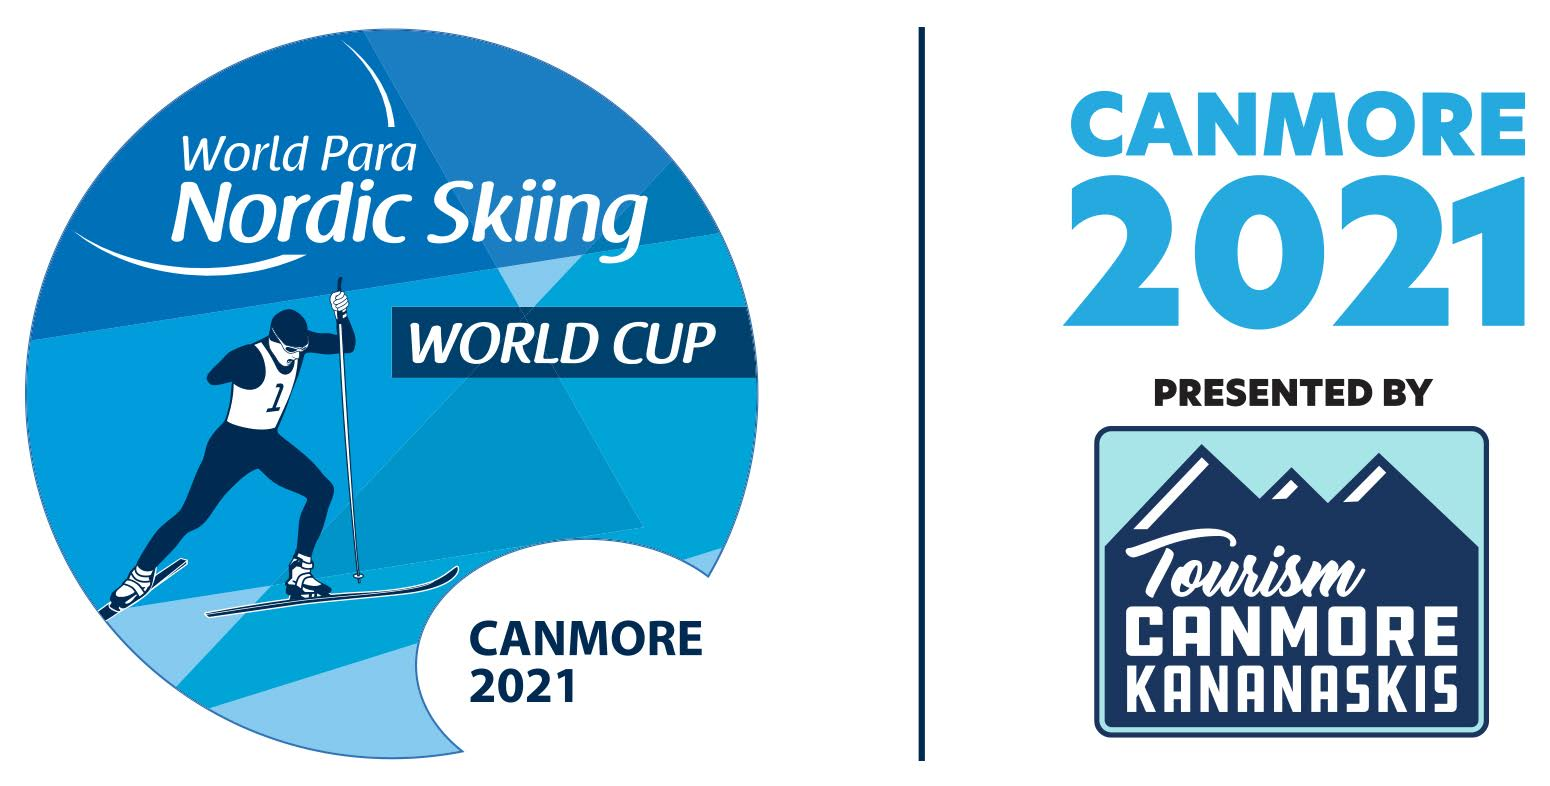 2022 World Para Nordic Skiing World Cup logo Canmore